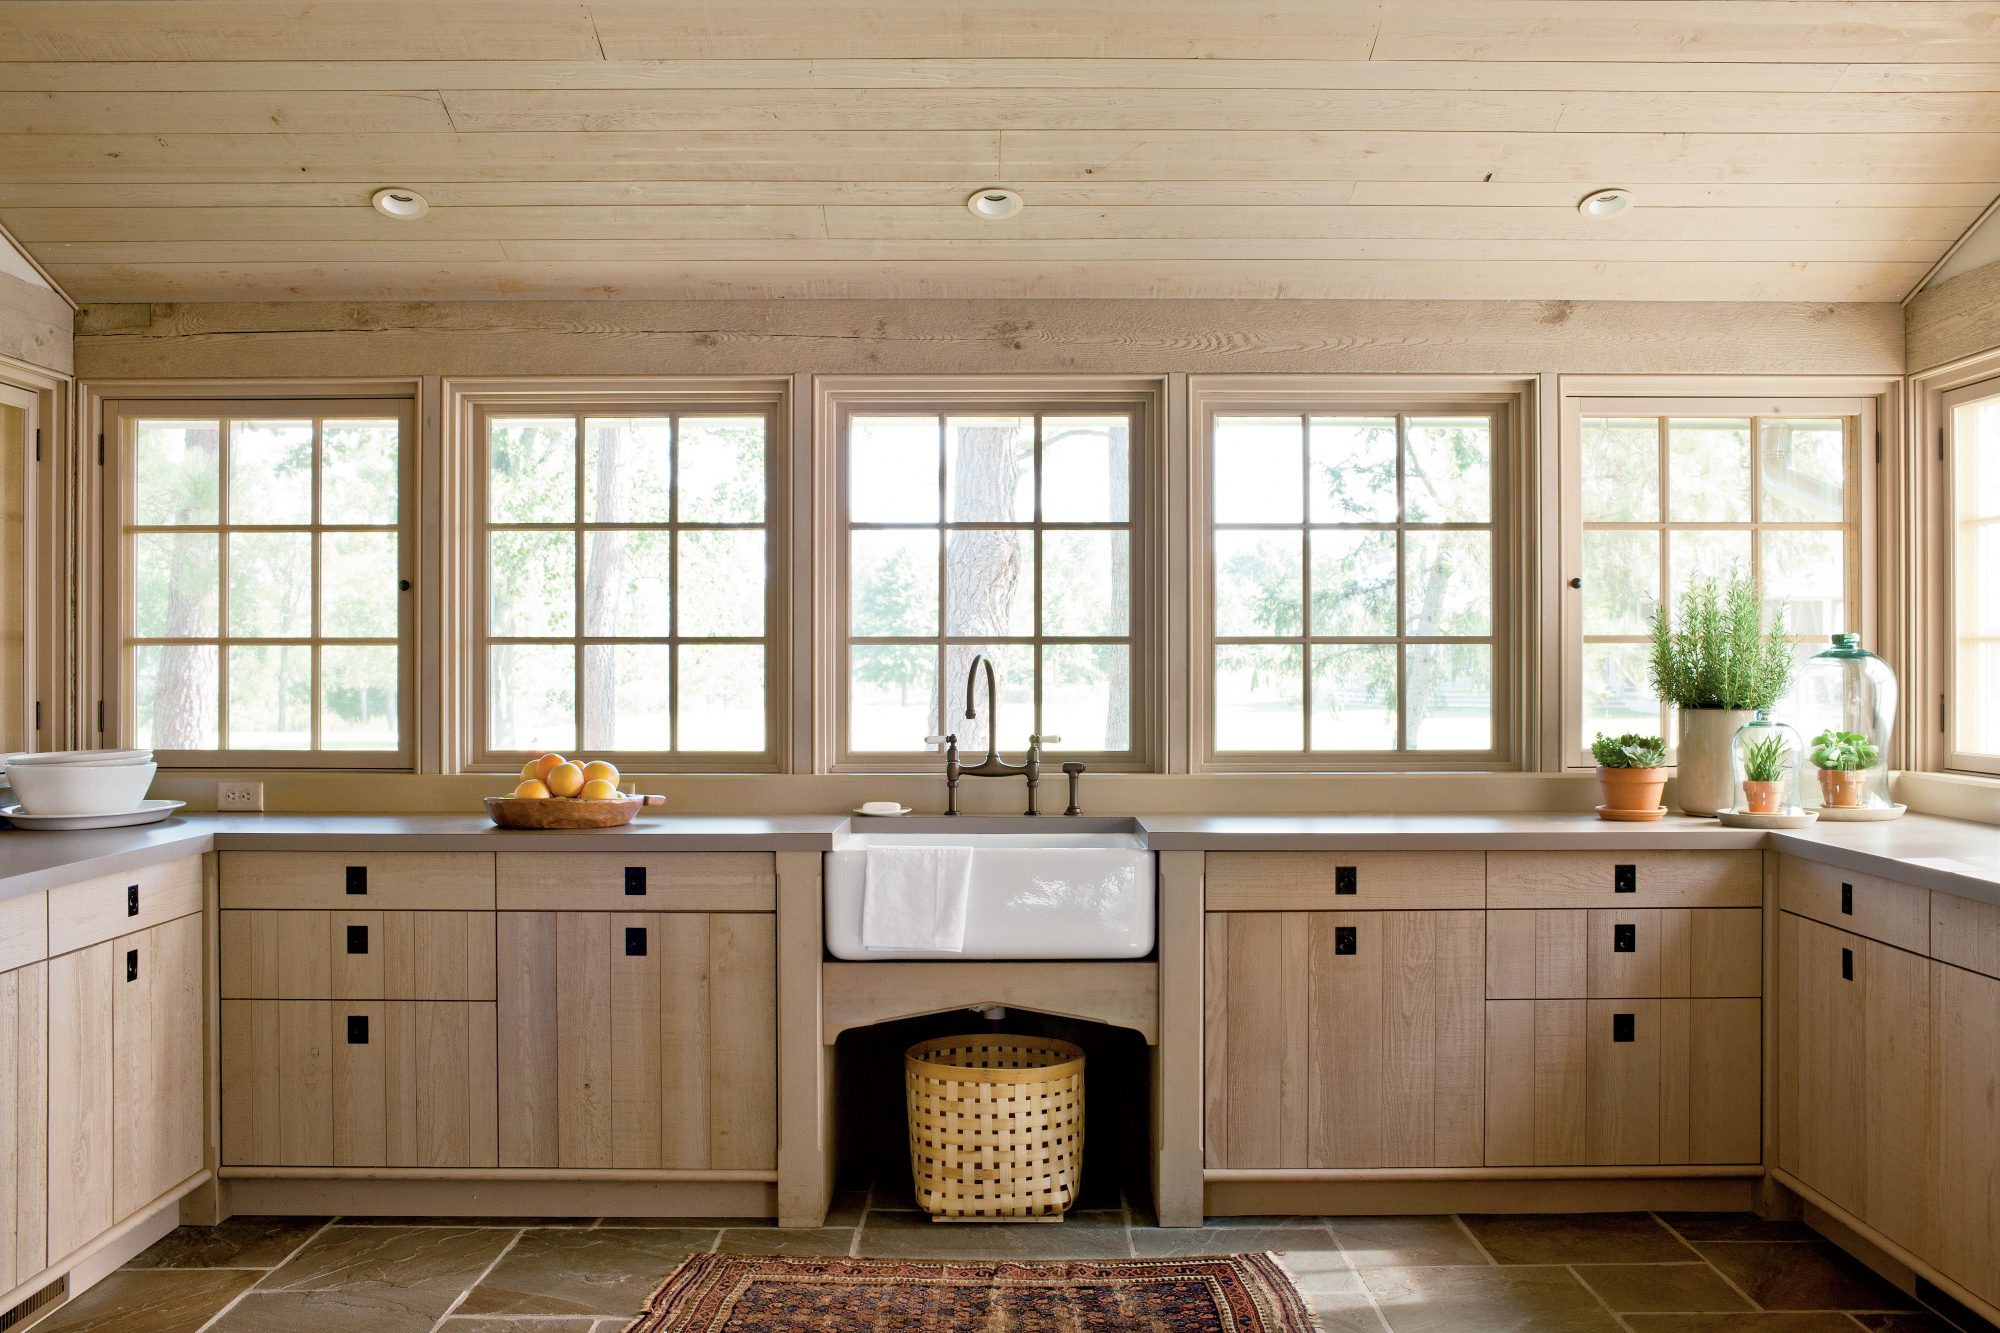 Get the Look: Cottage Kitchen